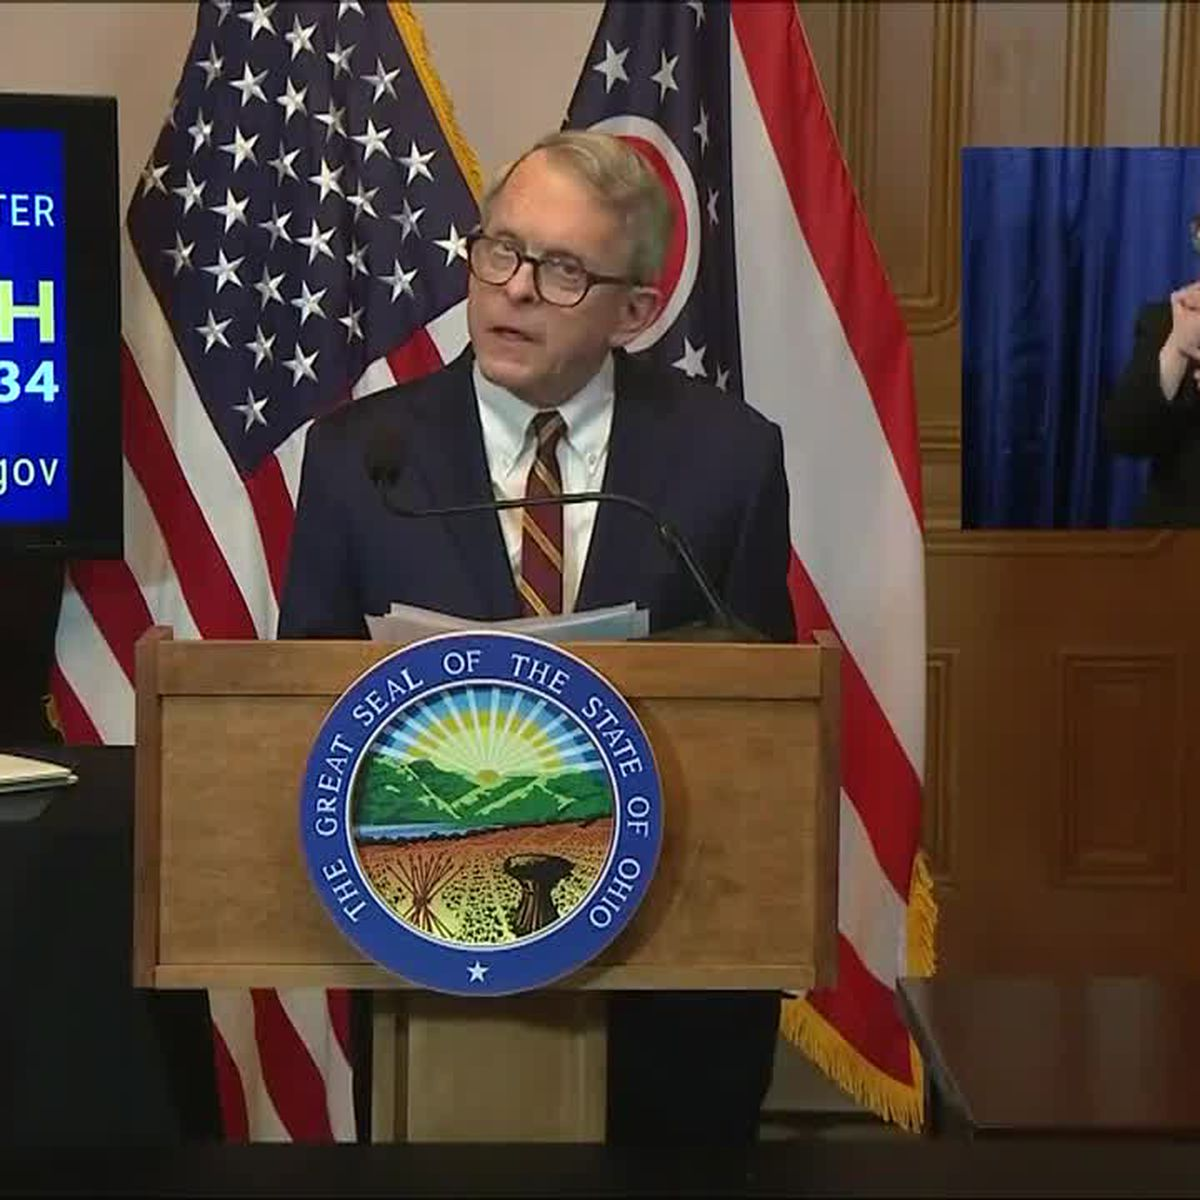 Gov. DeWine shares latest information about COVID-19 pandemic in Ohio